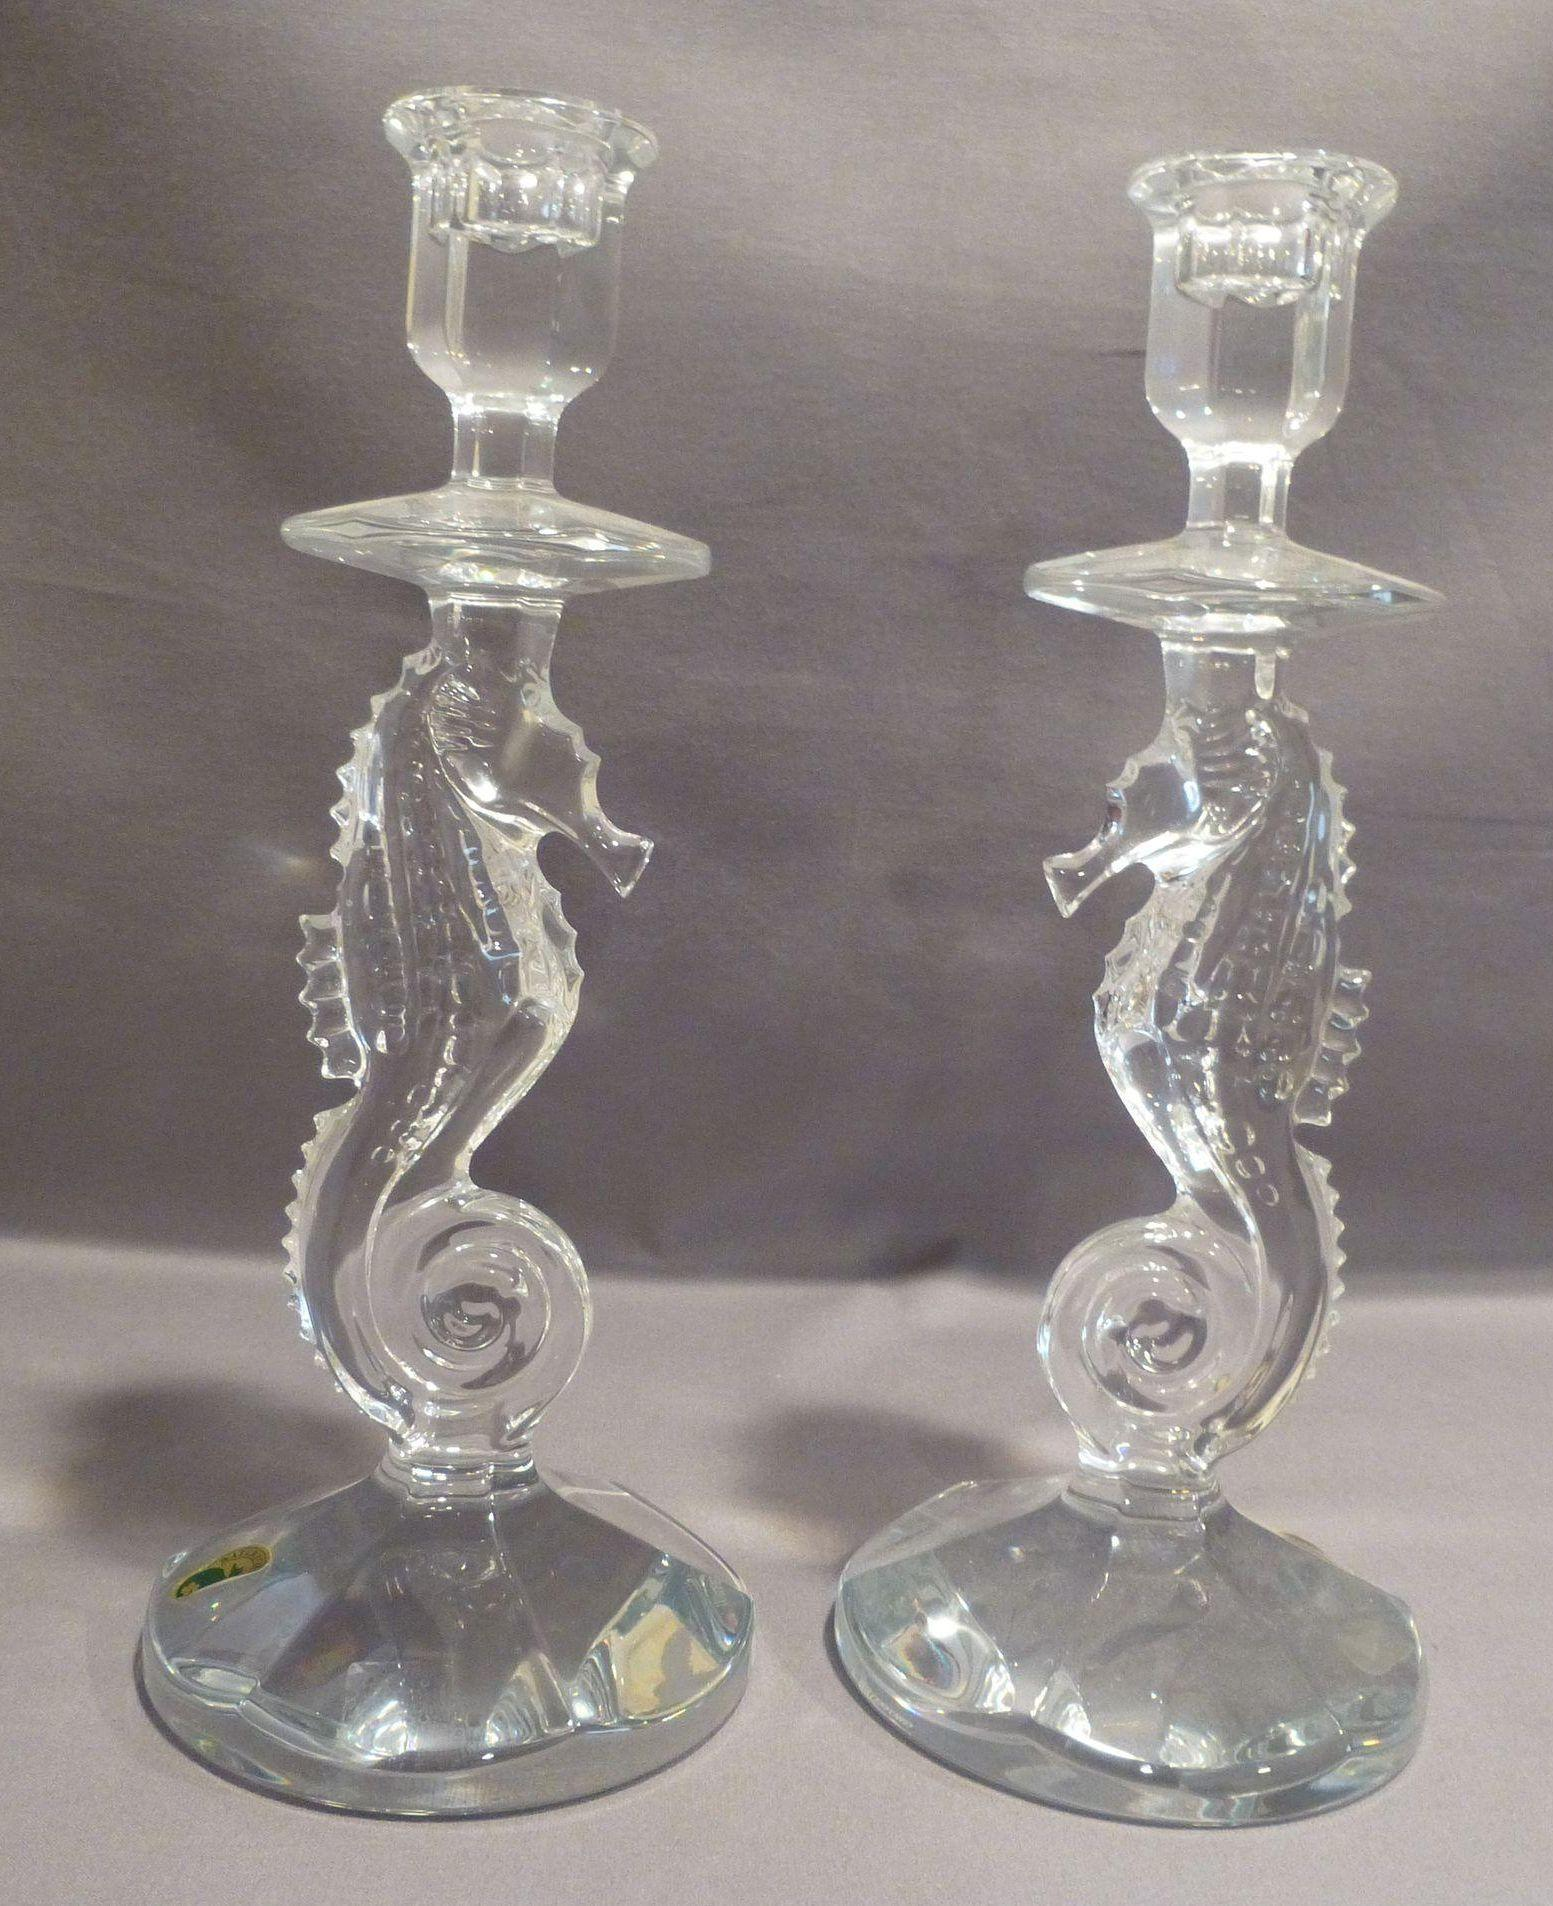 Pair Of Waterford Crystal Seahorse Candlesticks Signed